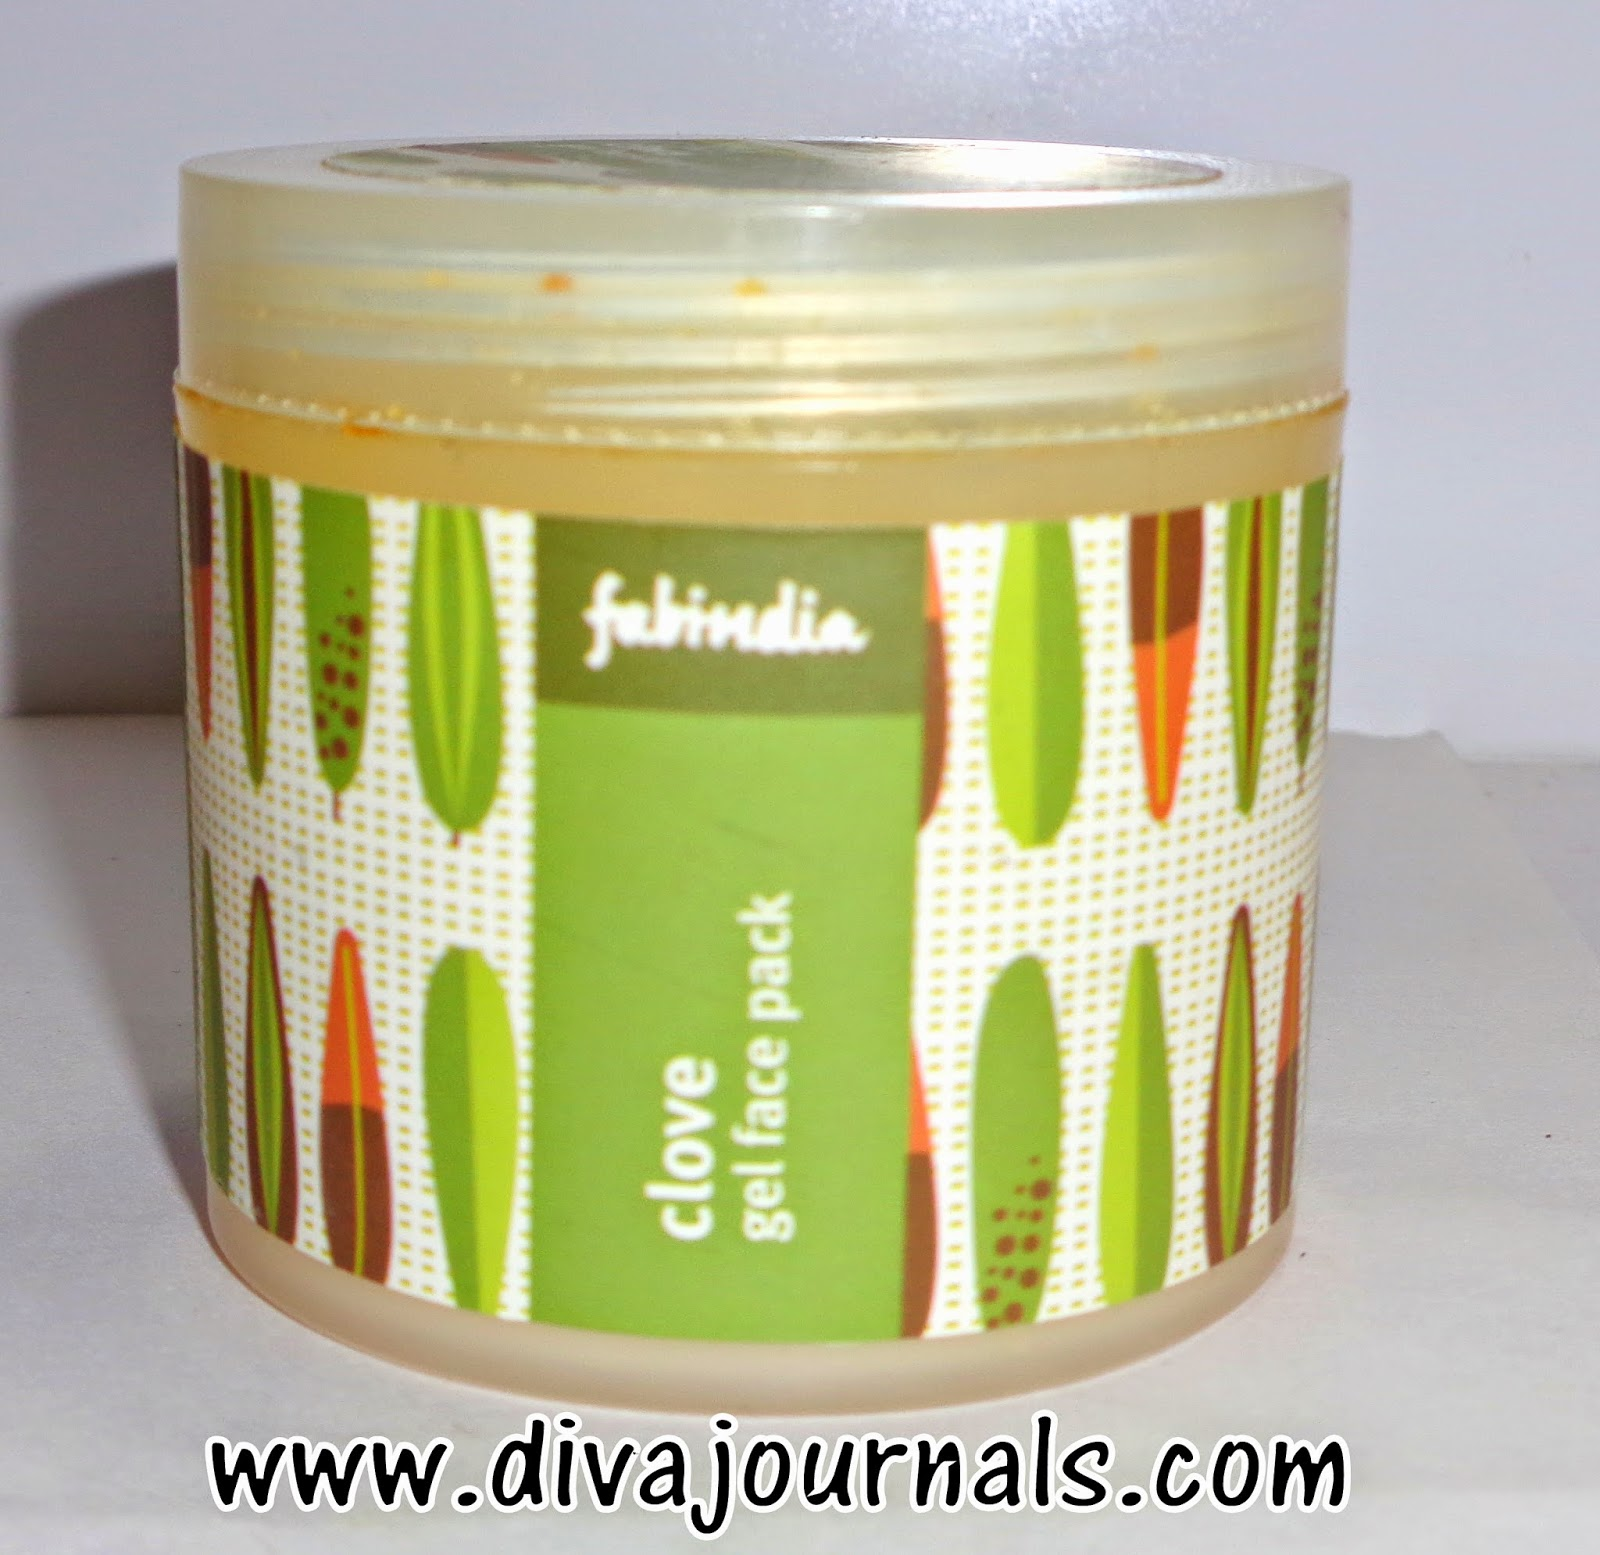 Fabindia Clove Gel Face Pack Review